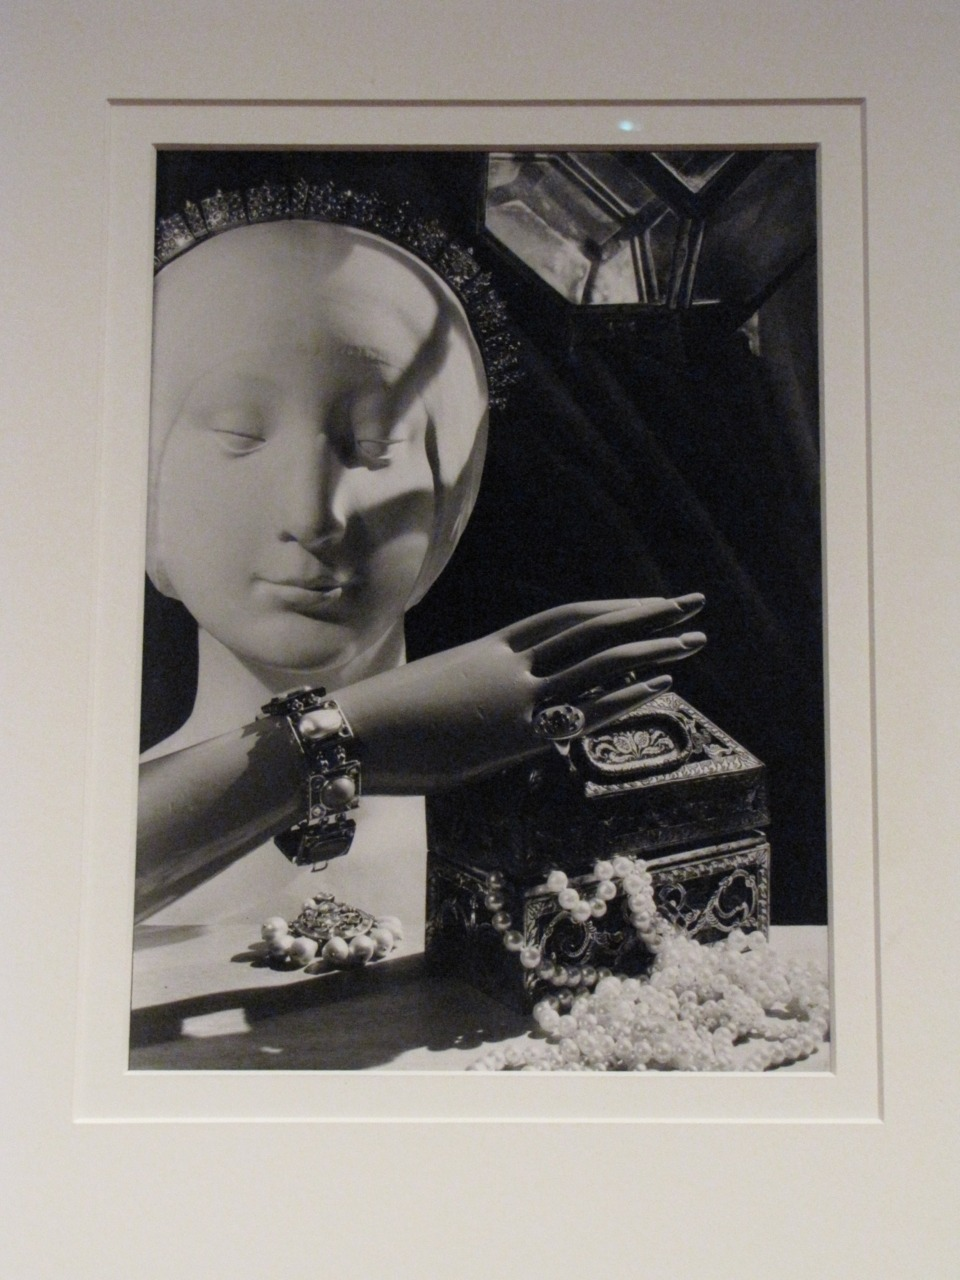 Man Ray, Mannequin, hand with jewelry, ca 1938 Courtesy of http://www.curatedobject.us